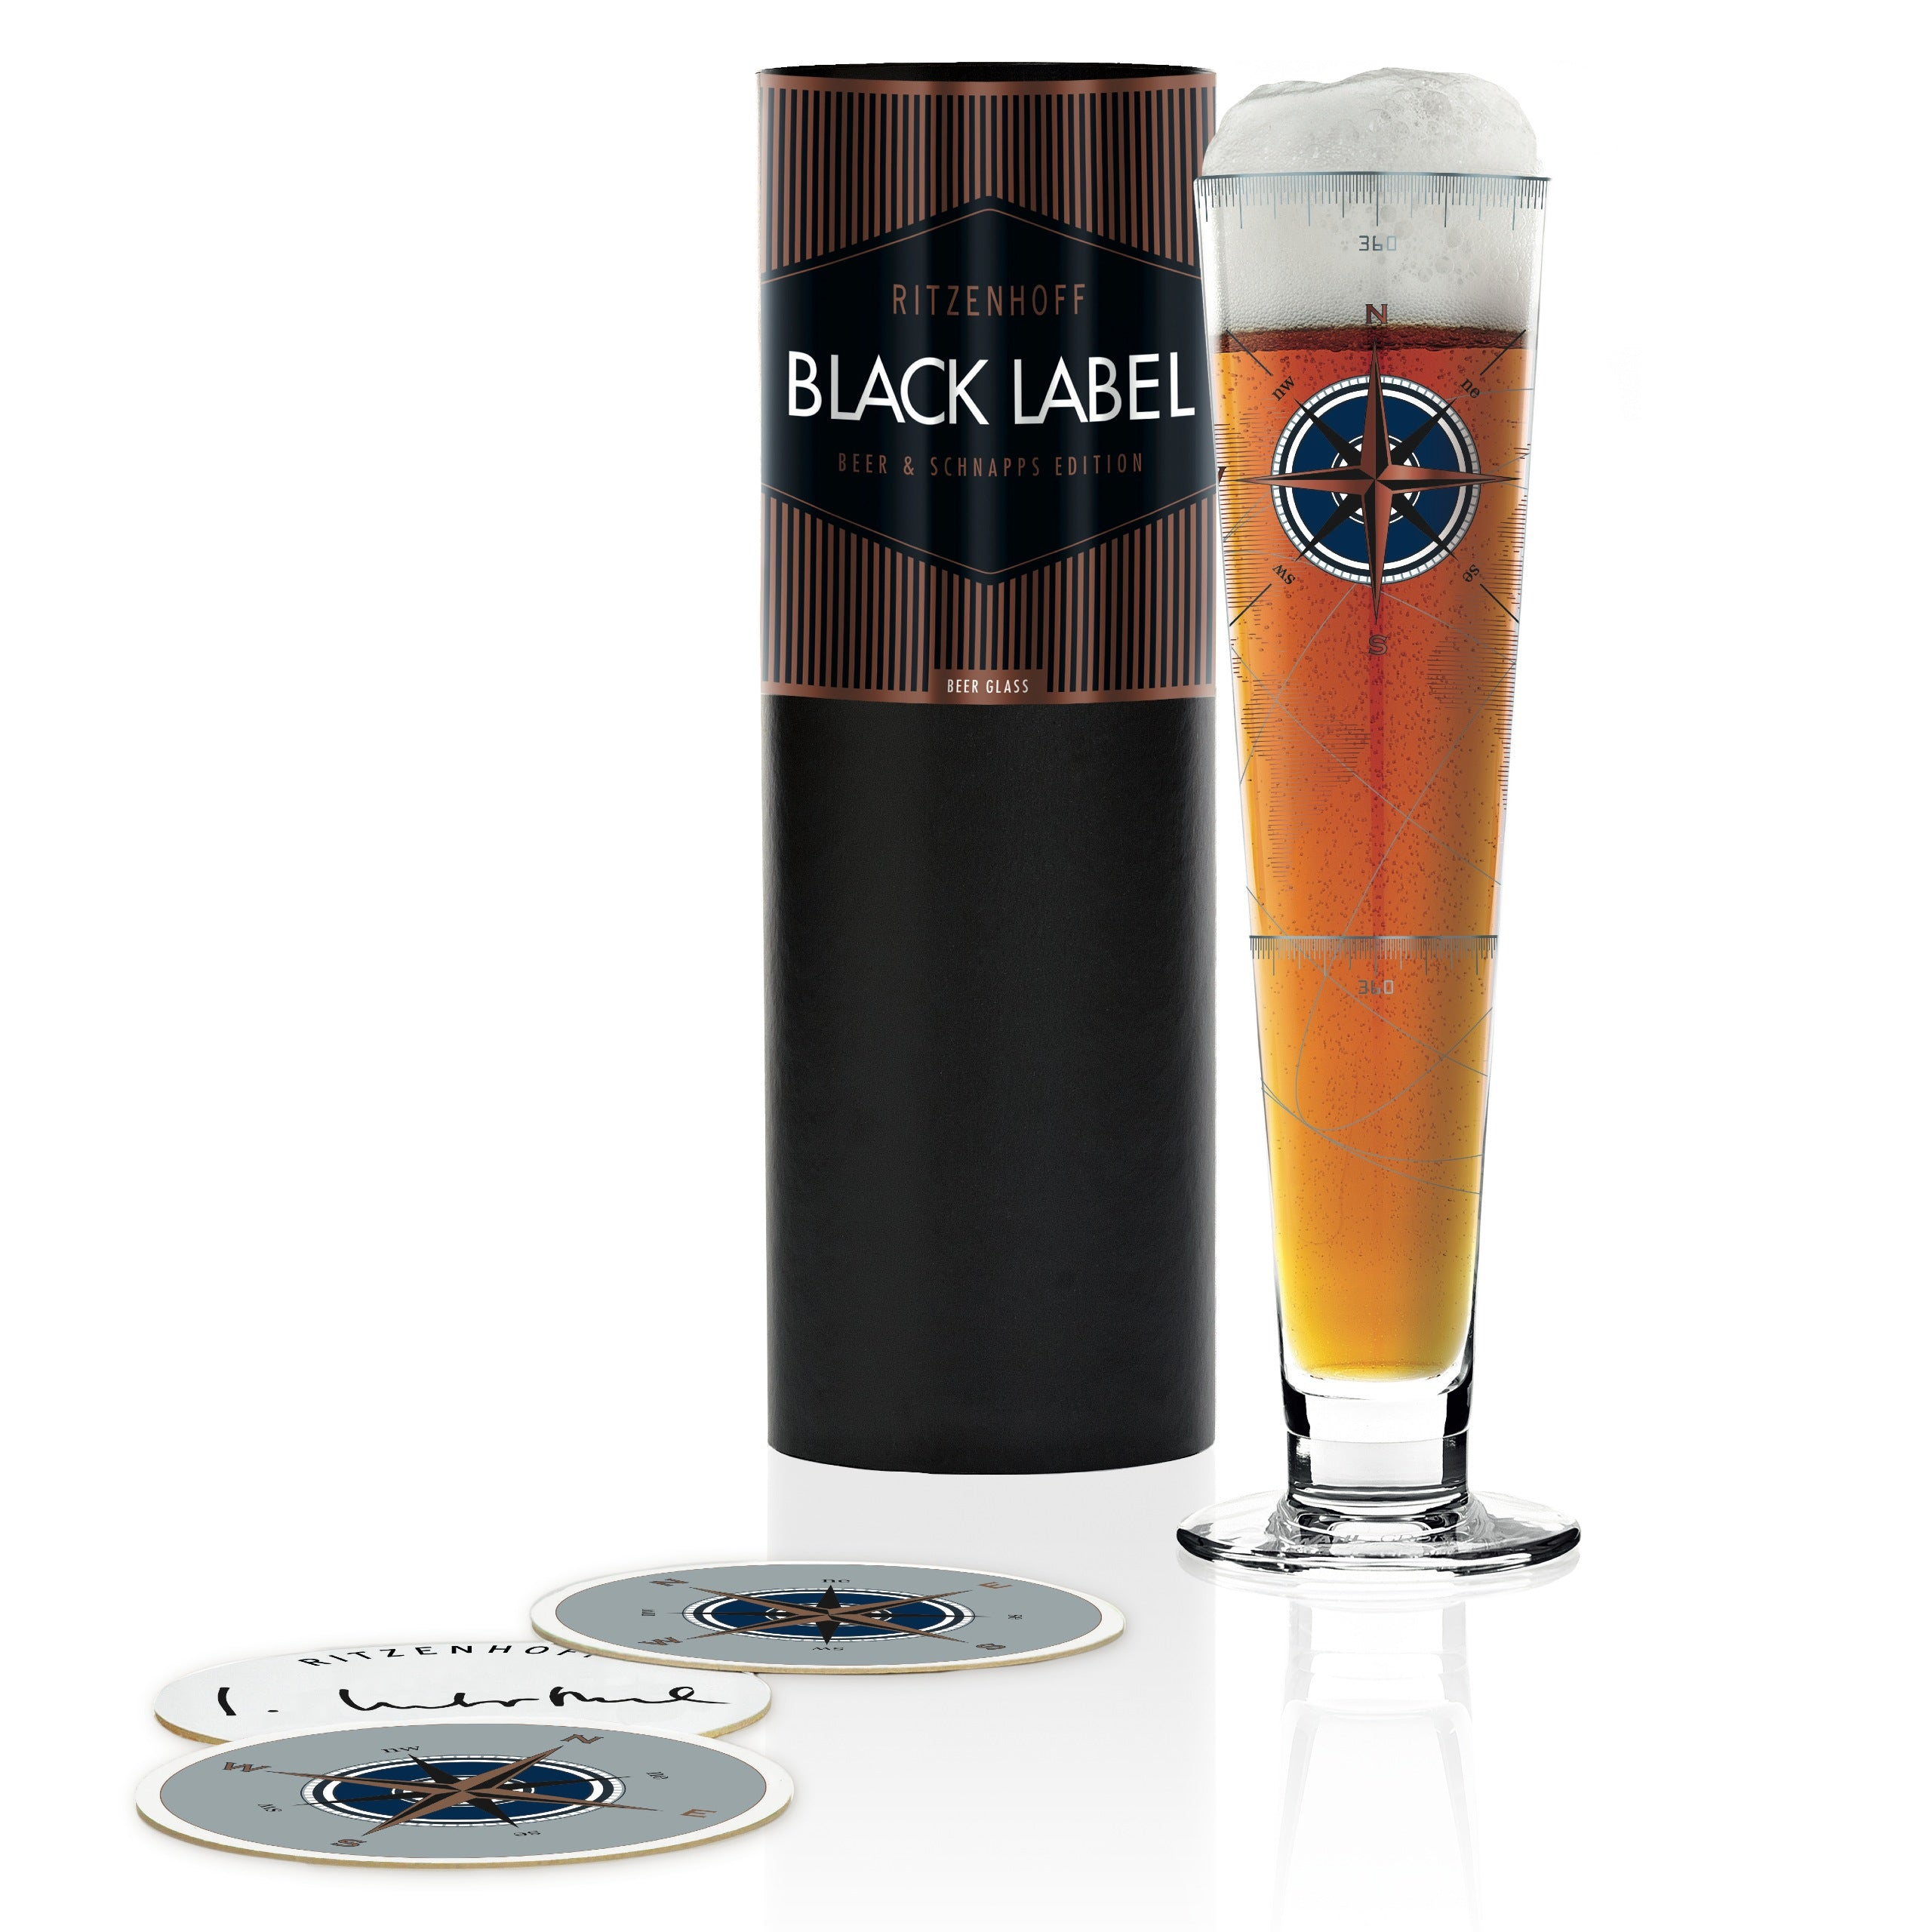 RITZENHOFF Black Label Beer Glass Design: I. Interthal 2018